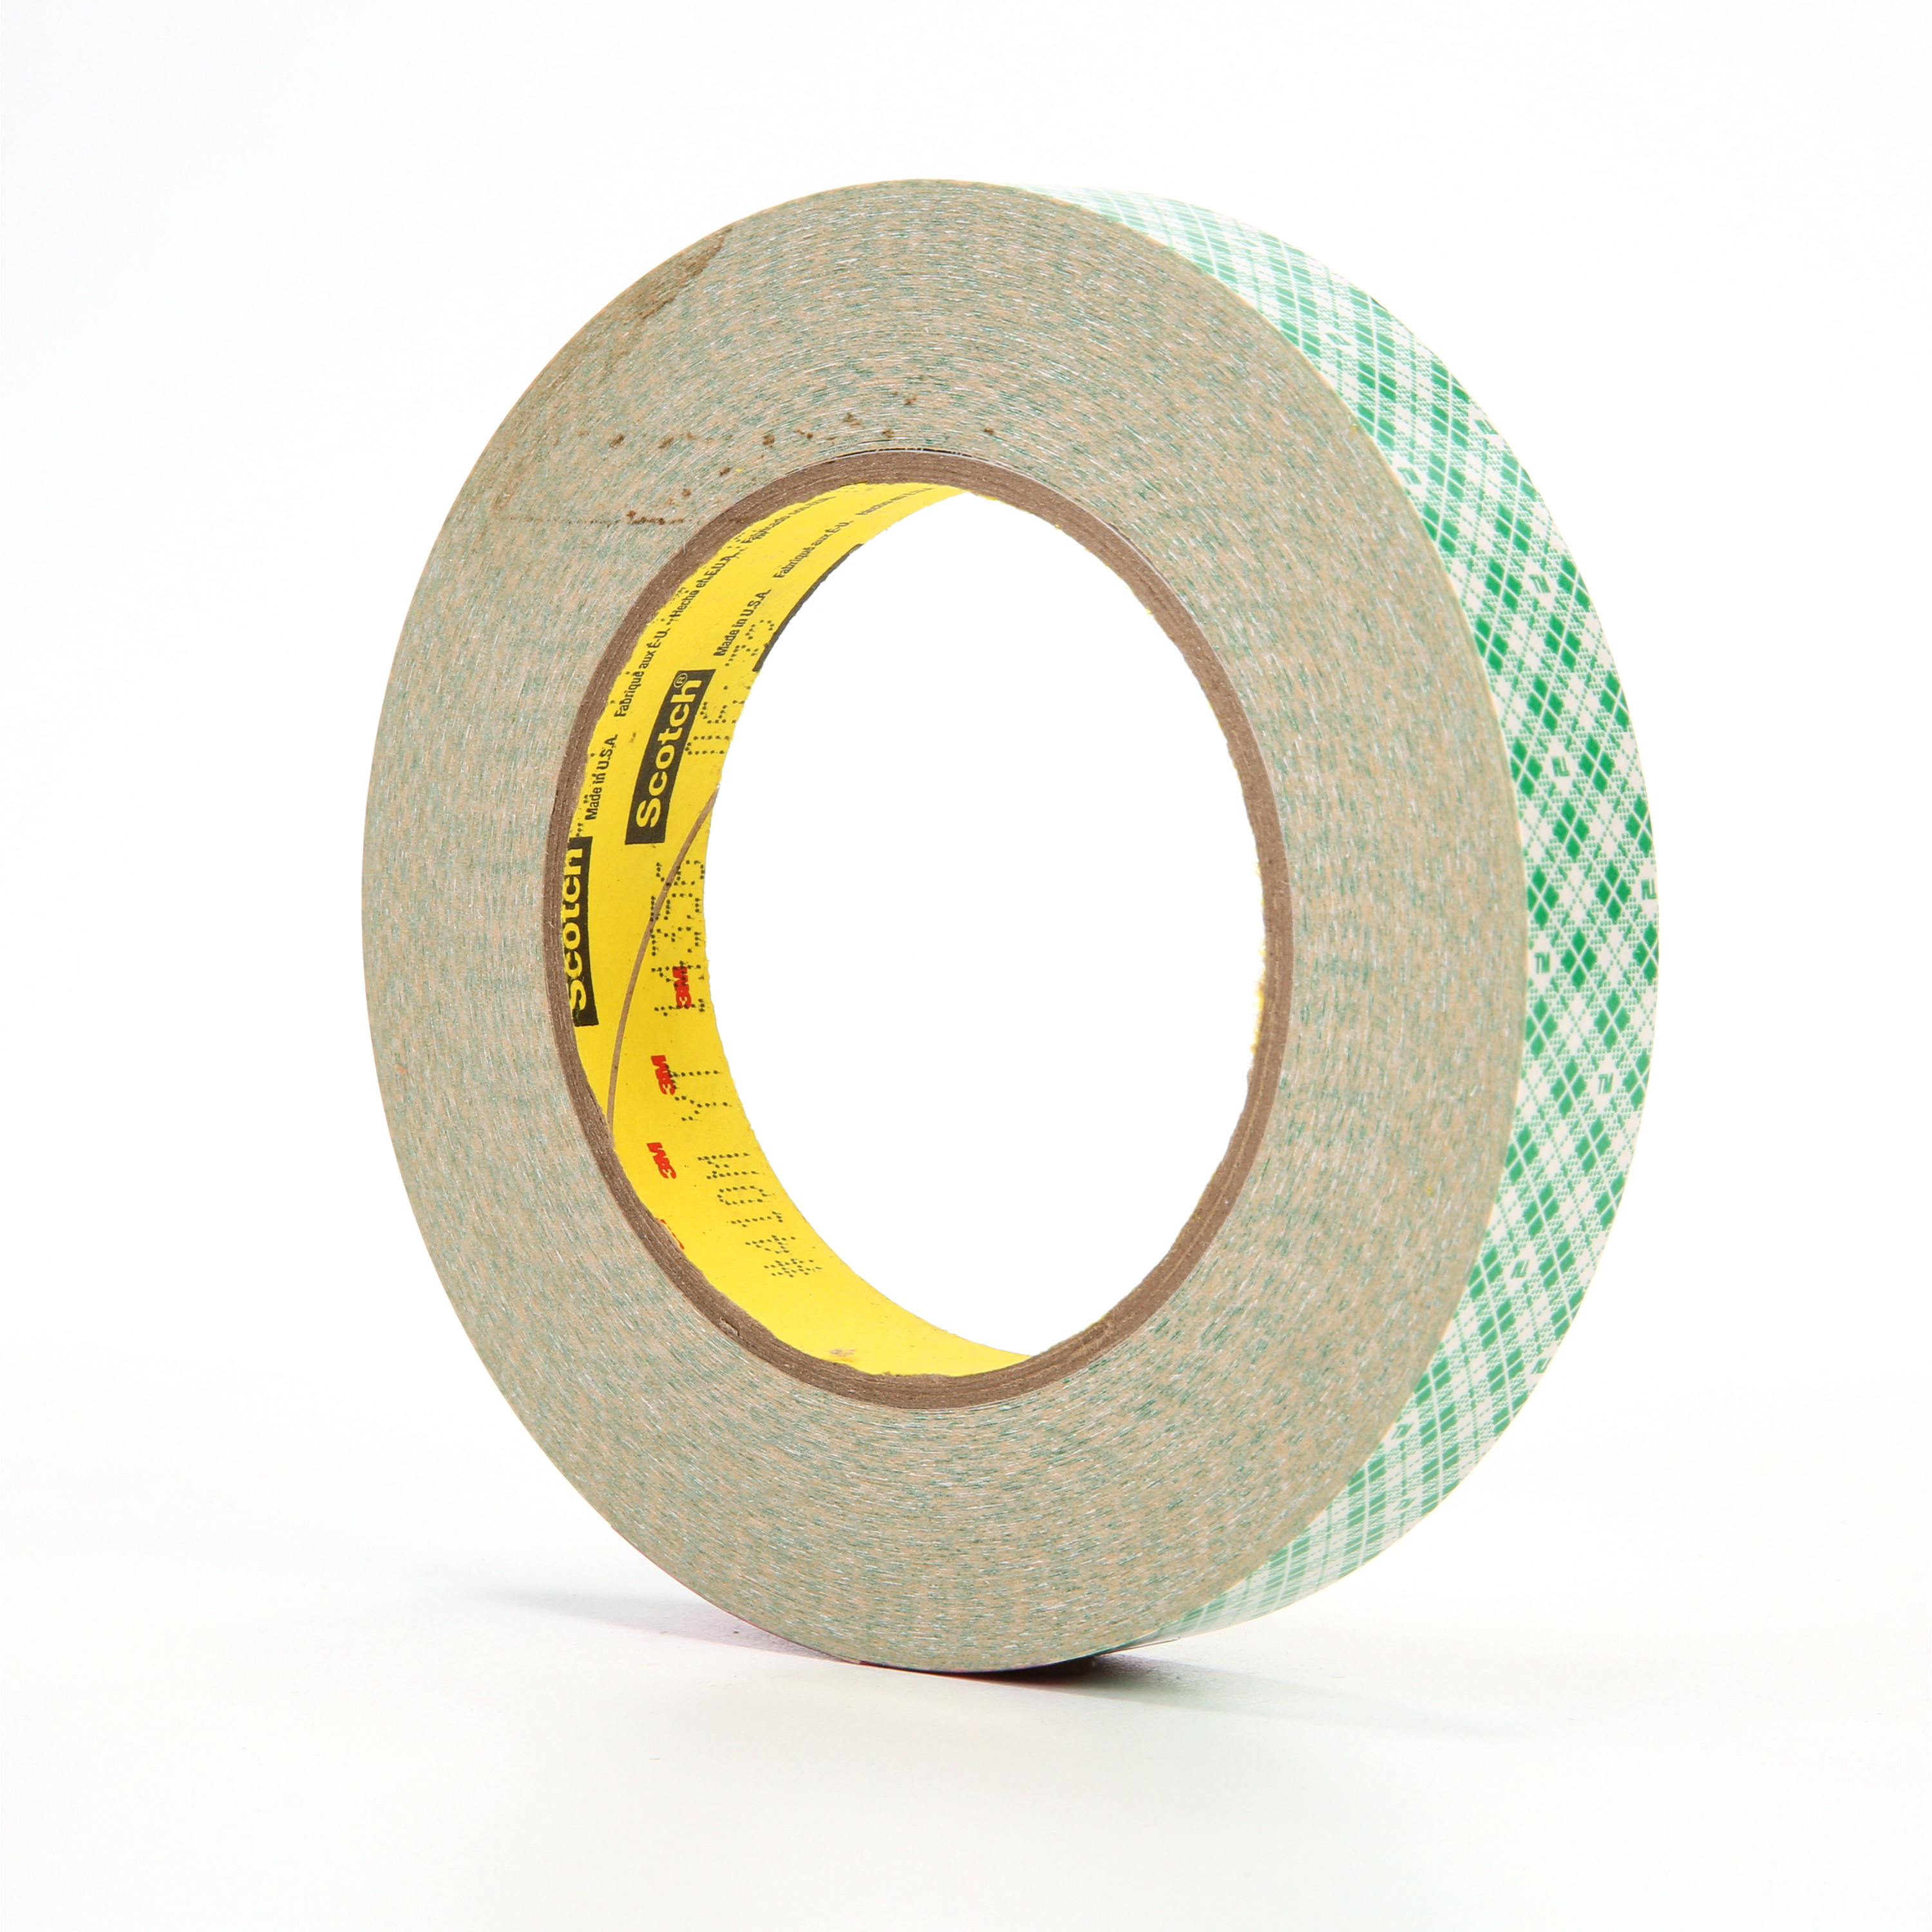 3M™ Double Coated Paper Tape 410M, Natural, 3/4 in x 36 yd, 5 mil, 48 rolls per case